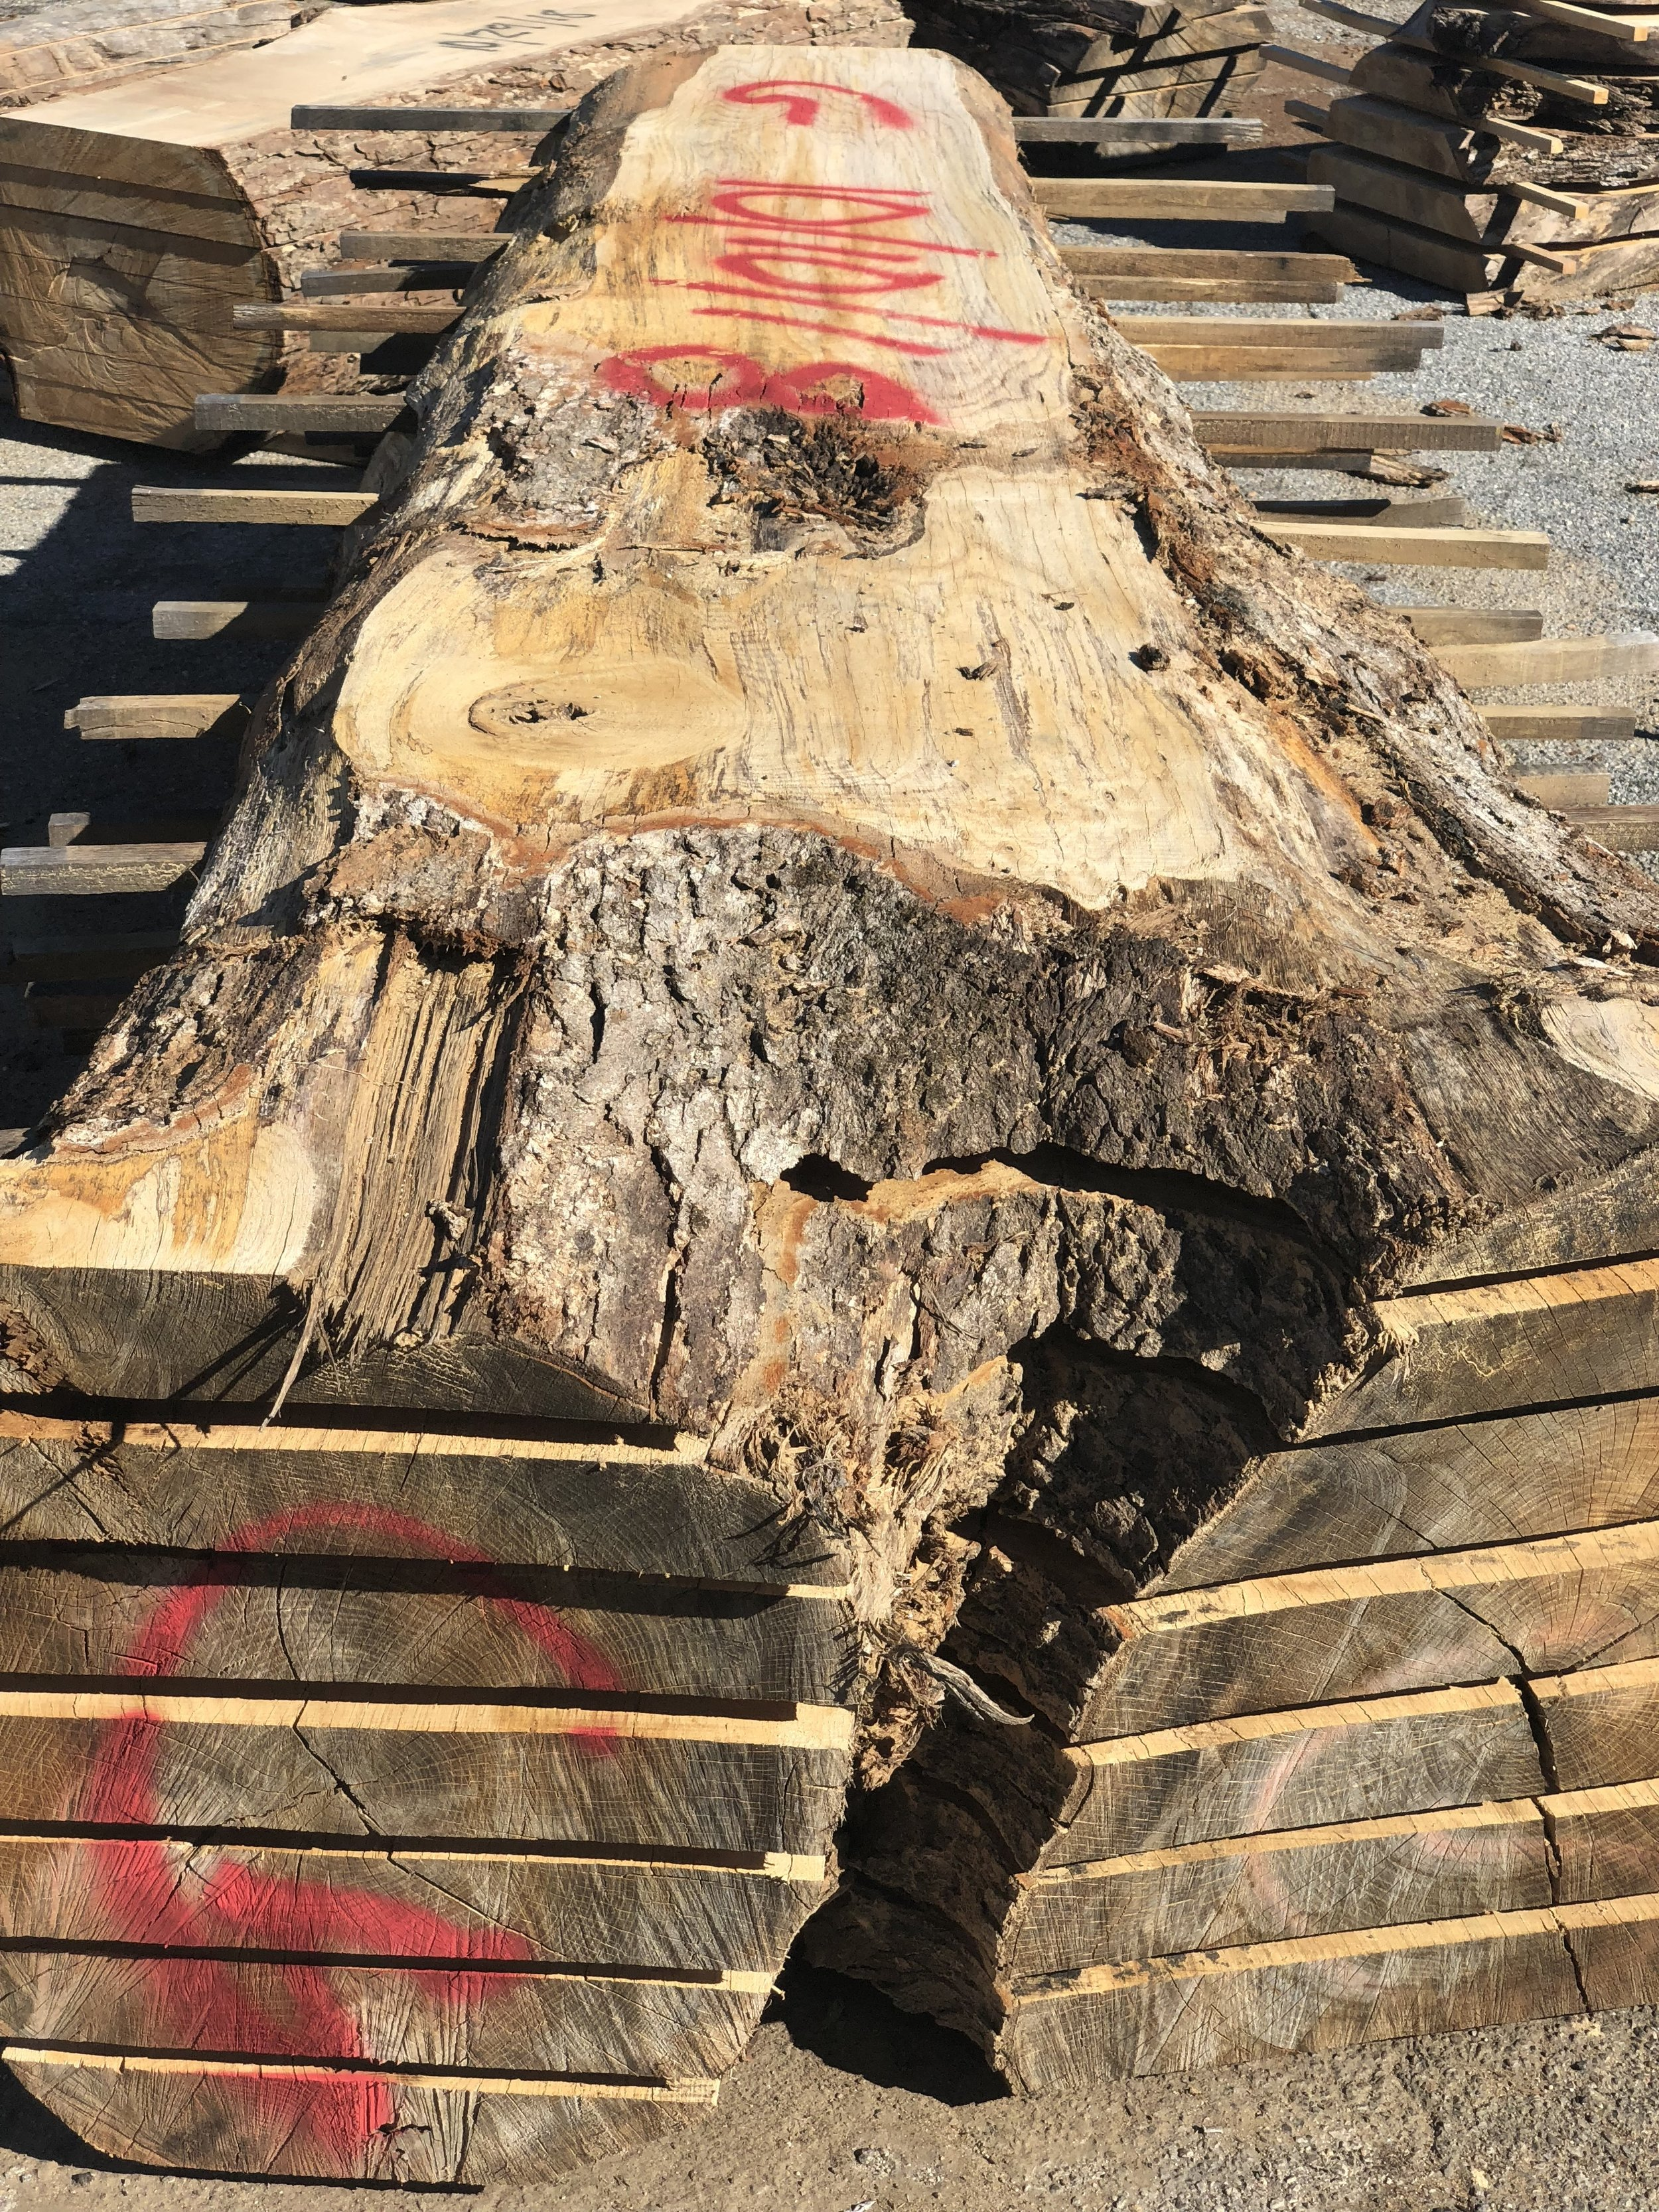 Logs sawed into slabs for tables, countertops and benches are stacked, stickered and labeled.